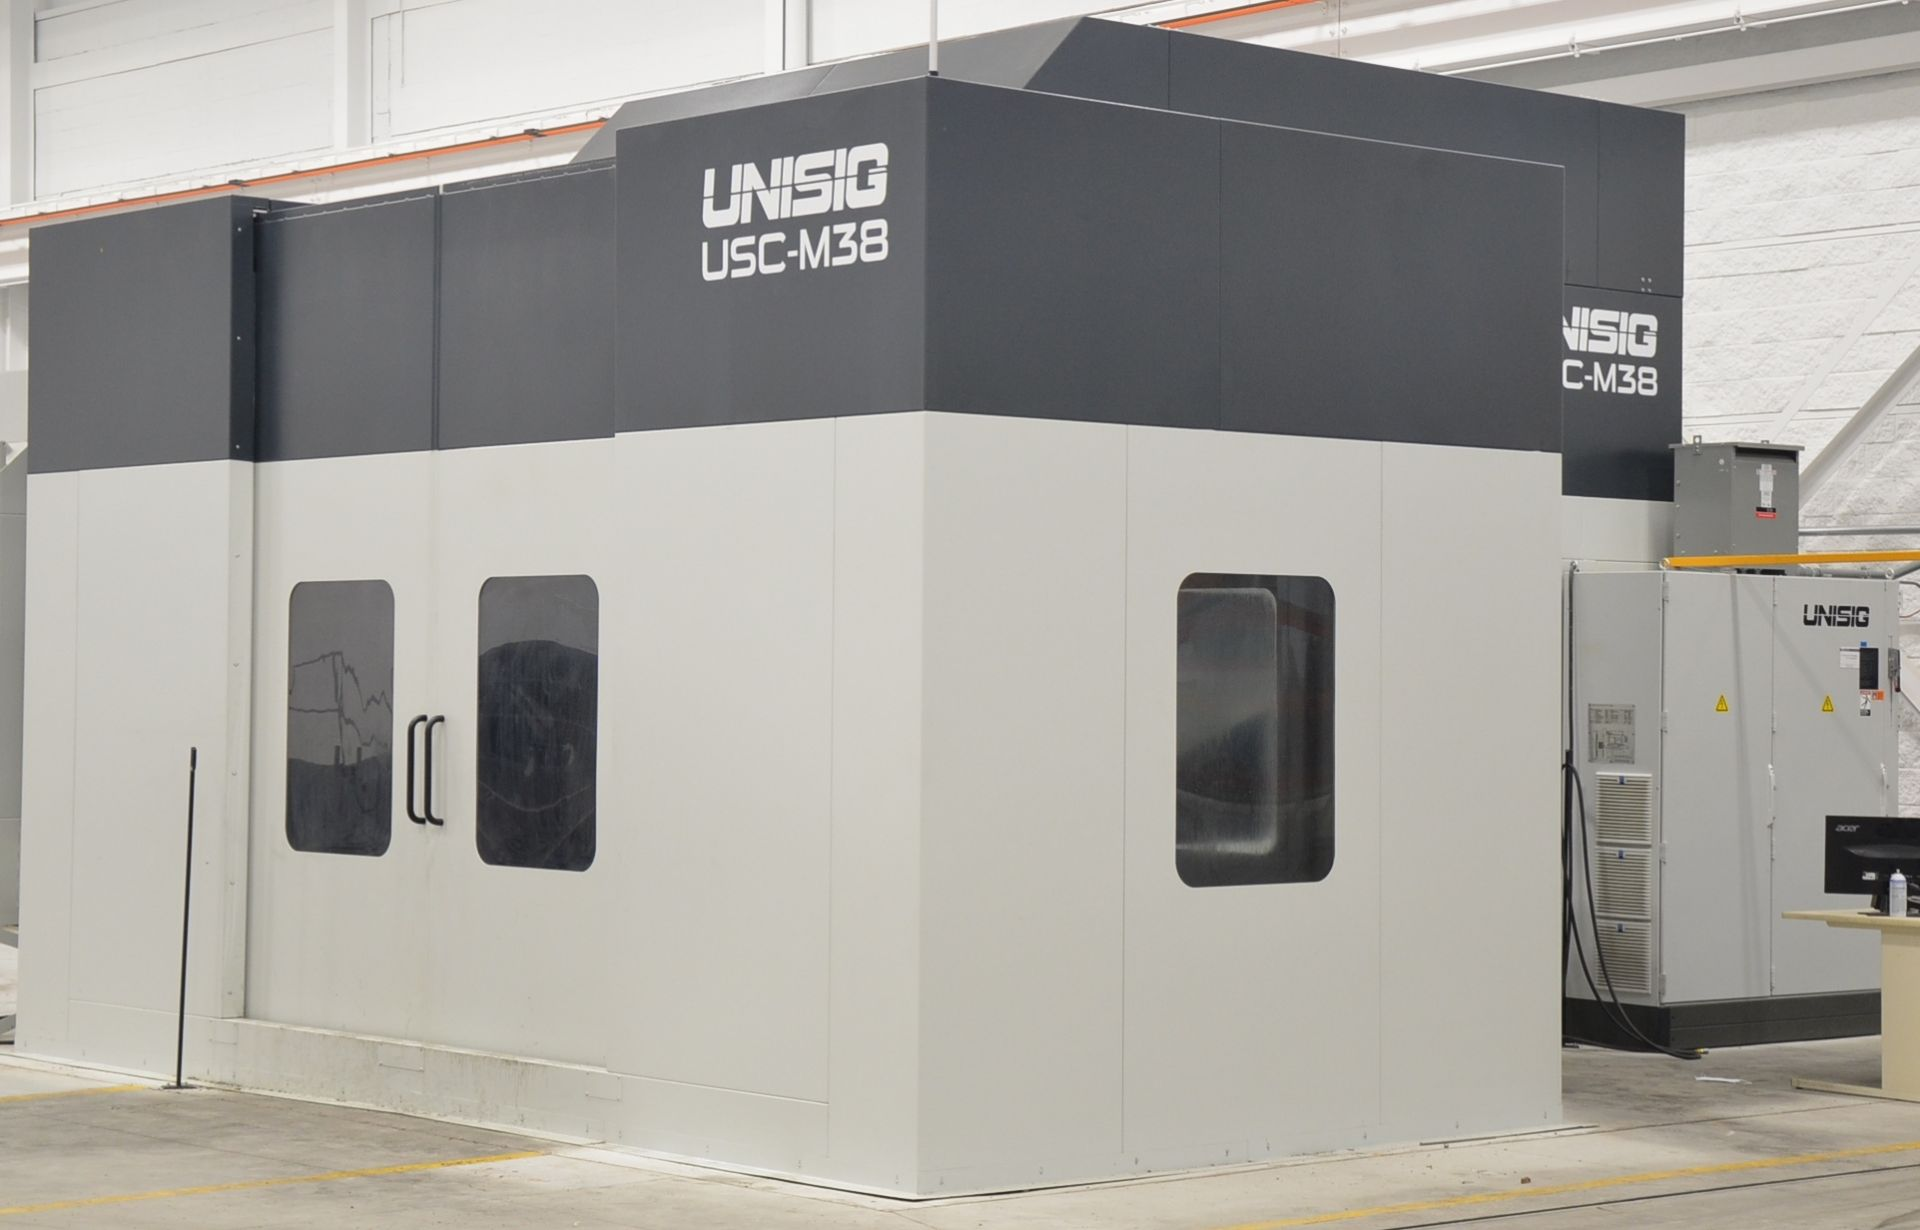 UNISIG (2020) USC-M38 5-AXIS COMBINATION CNC GUN DRILLING AND MILLING MACHINE WITH HEIDENHAIN ITNC